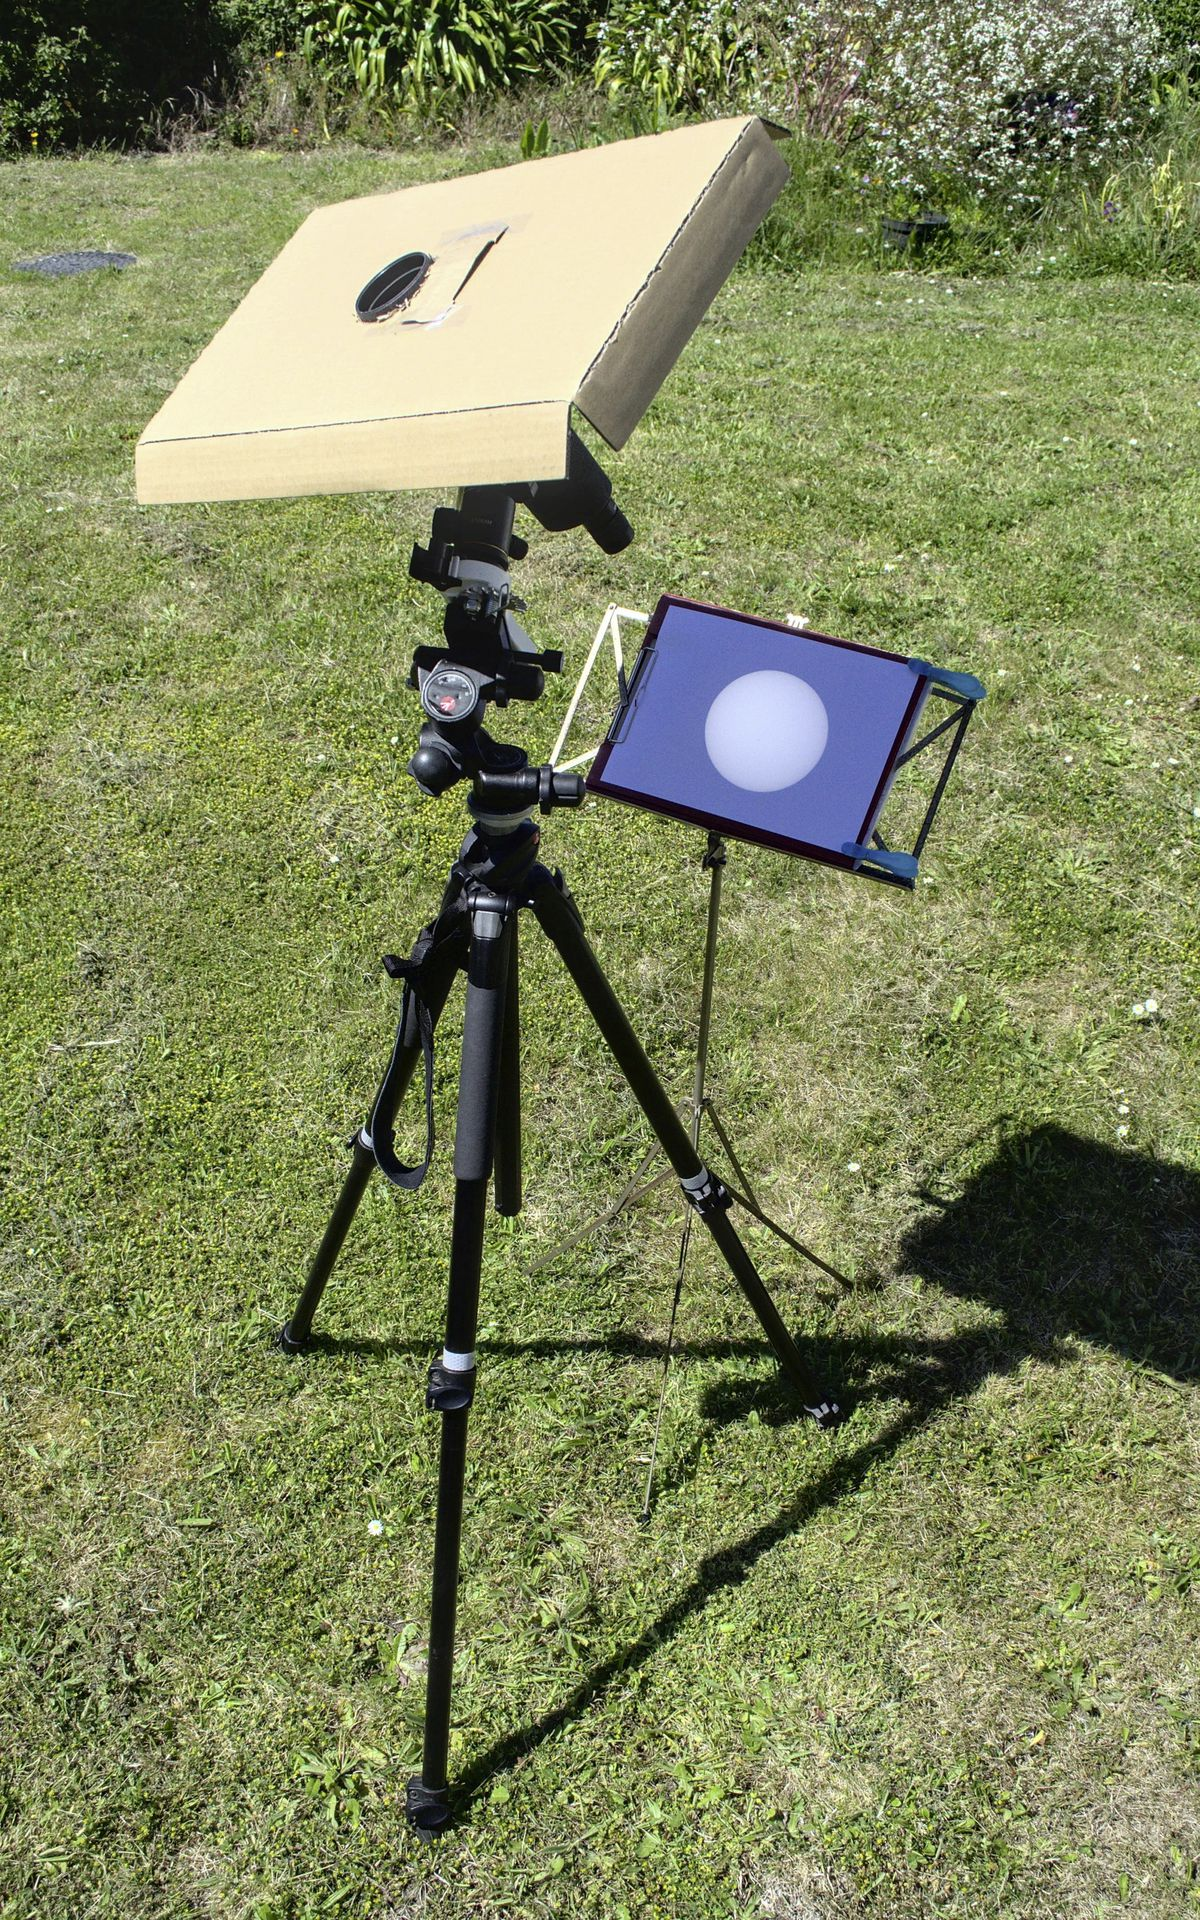 Projecting an image of the Sun through a small telescope onto a white card results in a crisp, much larger image that can show sunspots. To make sure no one can look through the telescope, shield the area or enclose the telescope and screen in a box. Cover lenses when not in use to protect equipment and people. (29628415)